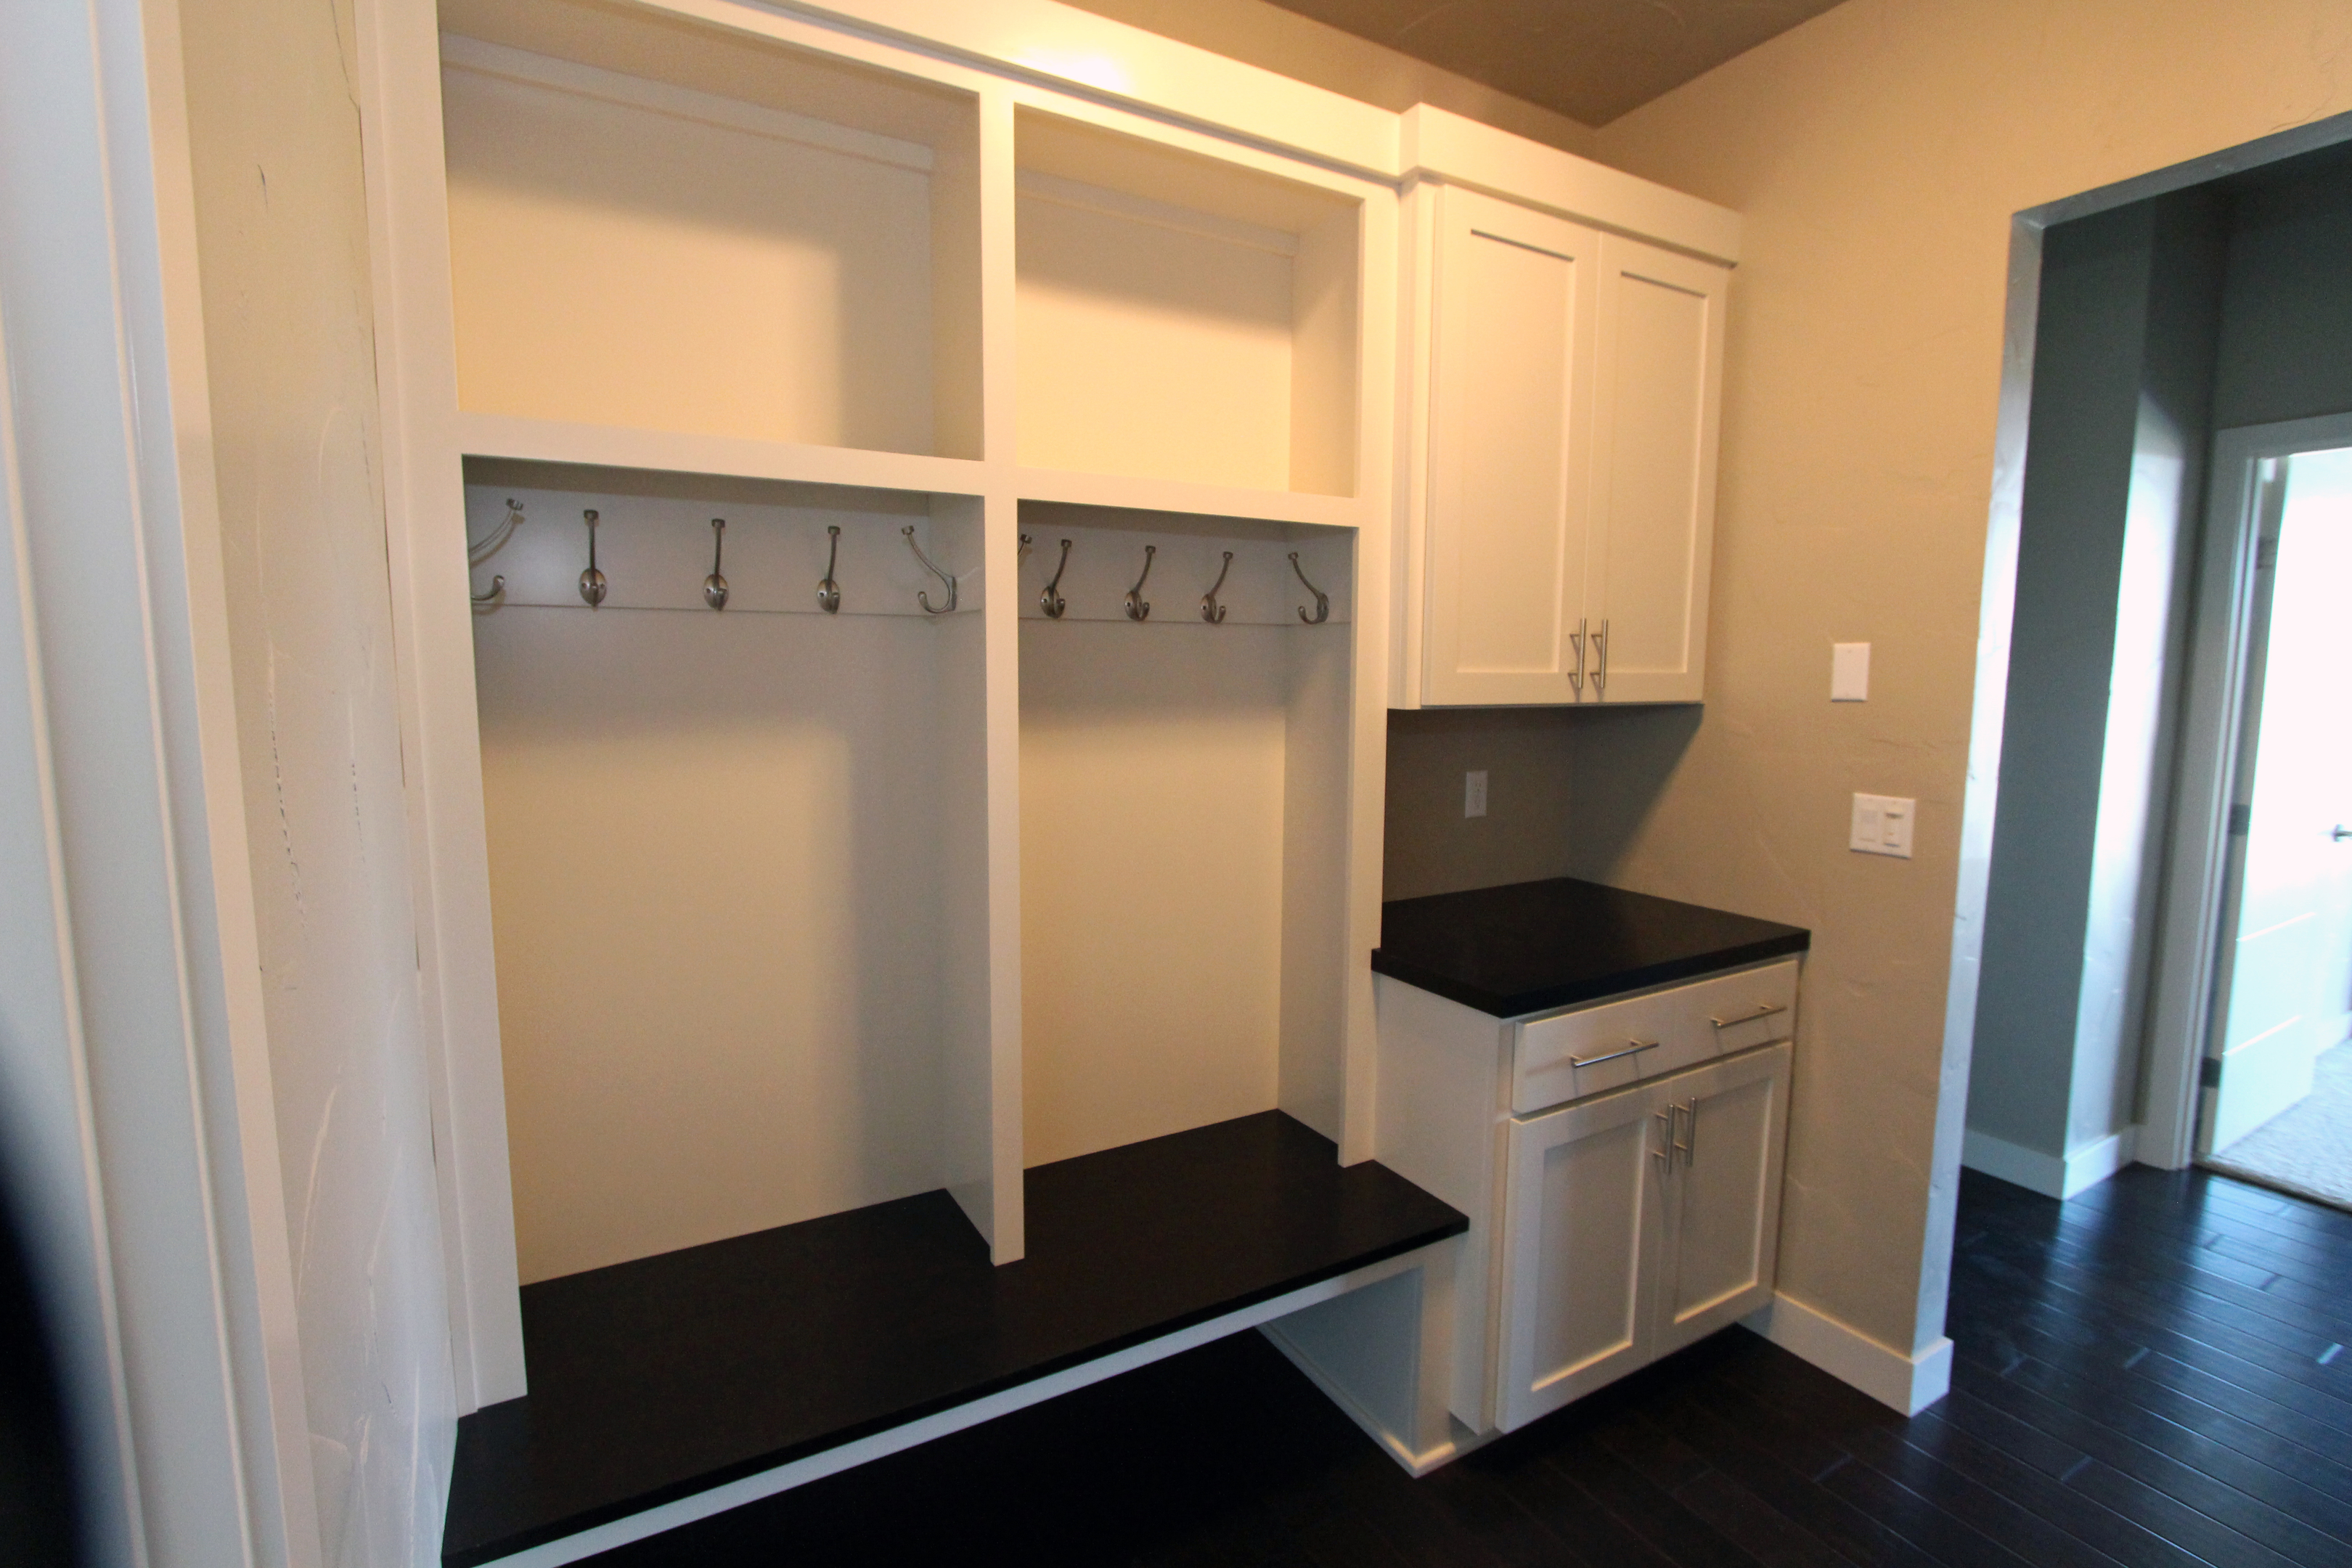 Thumb Laundry Or Utility Contemporary Style Painted Recessed Panel Cubbies Coat Rack And Hooks Bench Seat